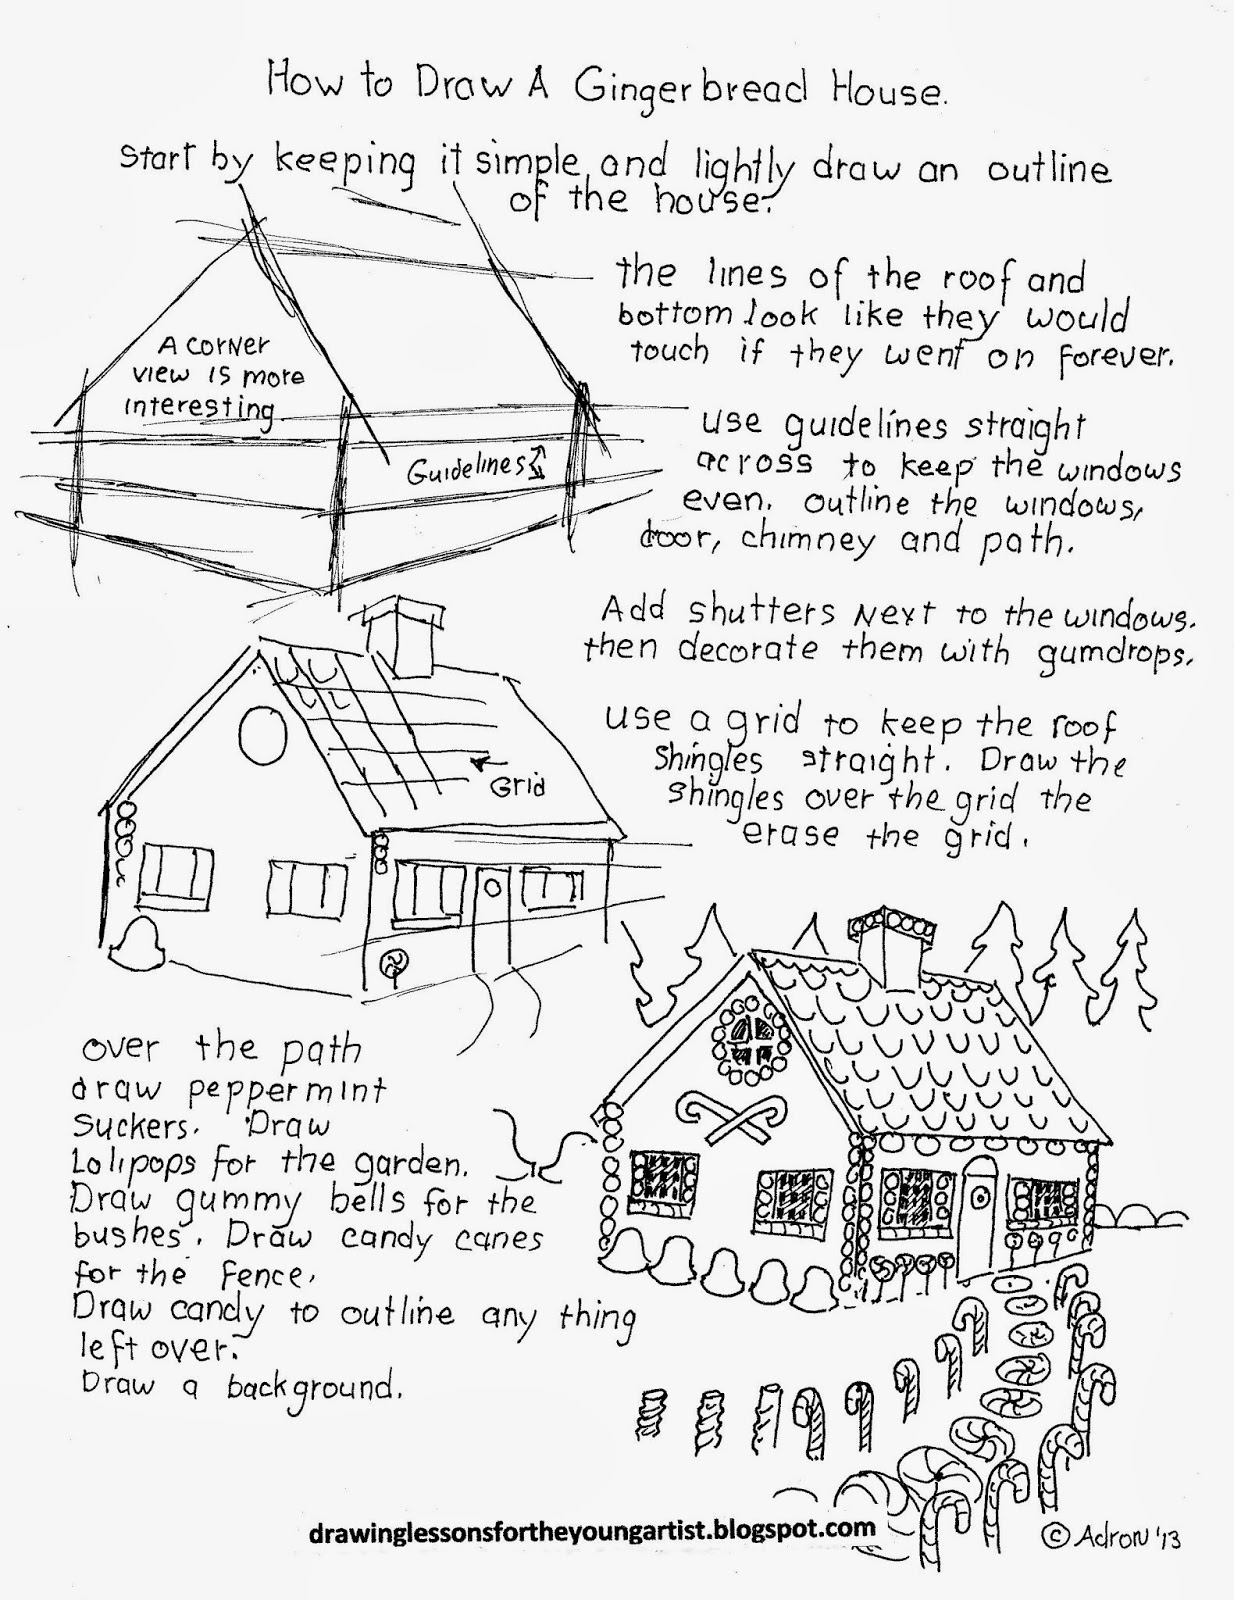 How To Draw Worksheets For The Young Artist How To Draw A Gingerbread House For Christmas